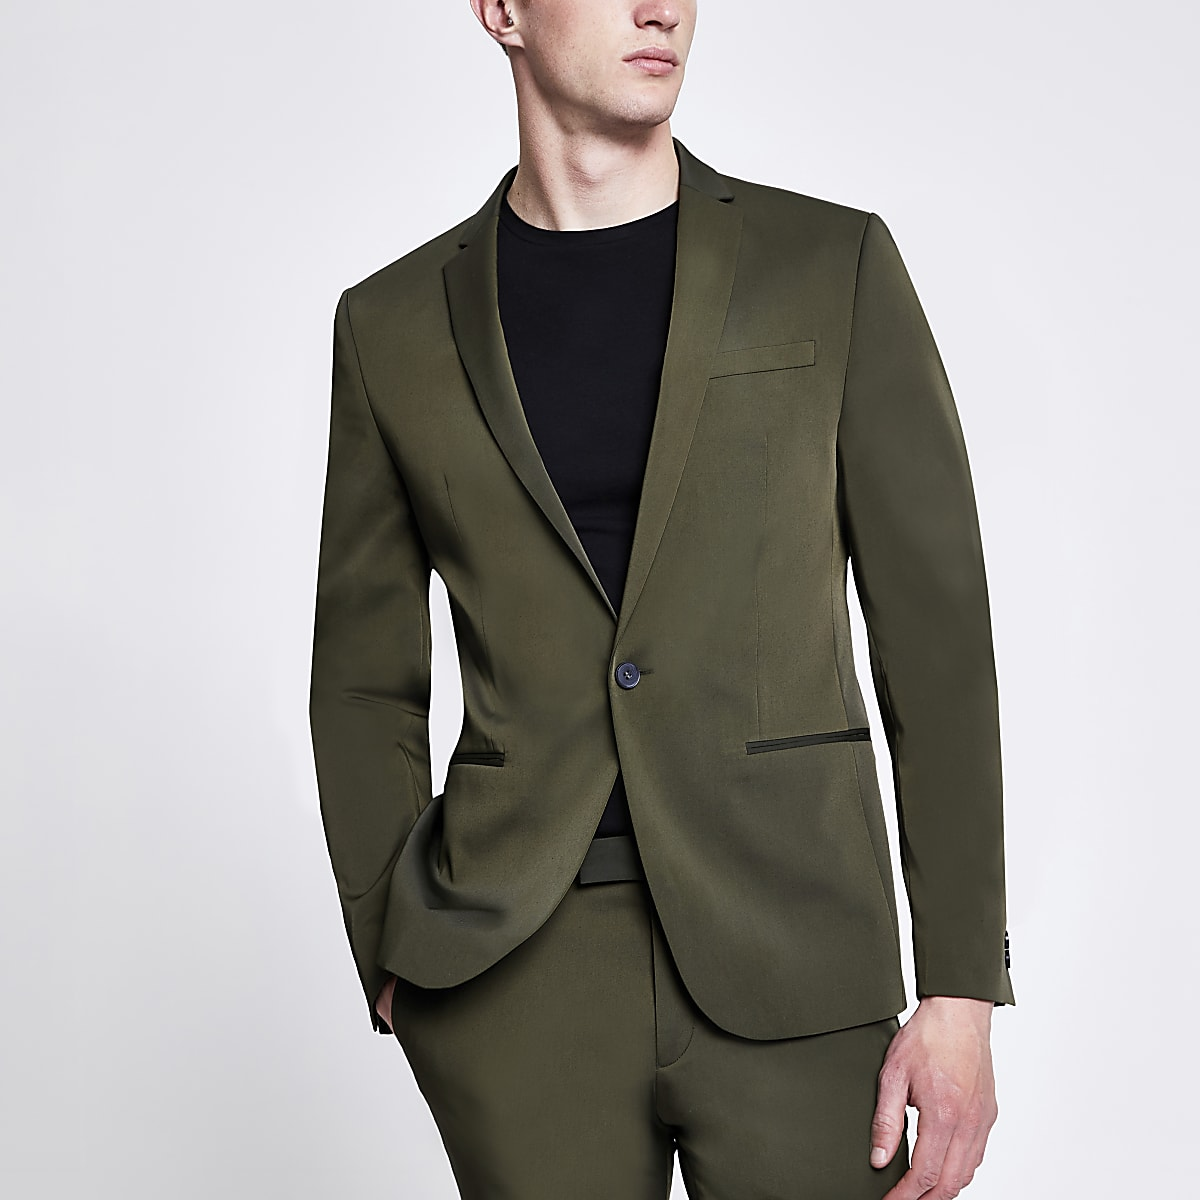 Khaki high shine stretch skinny suit jacket